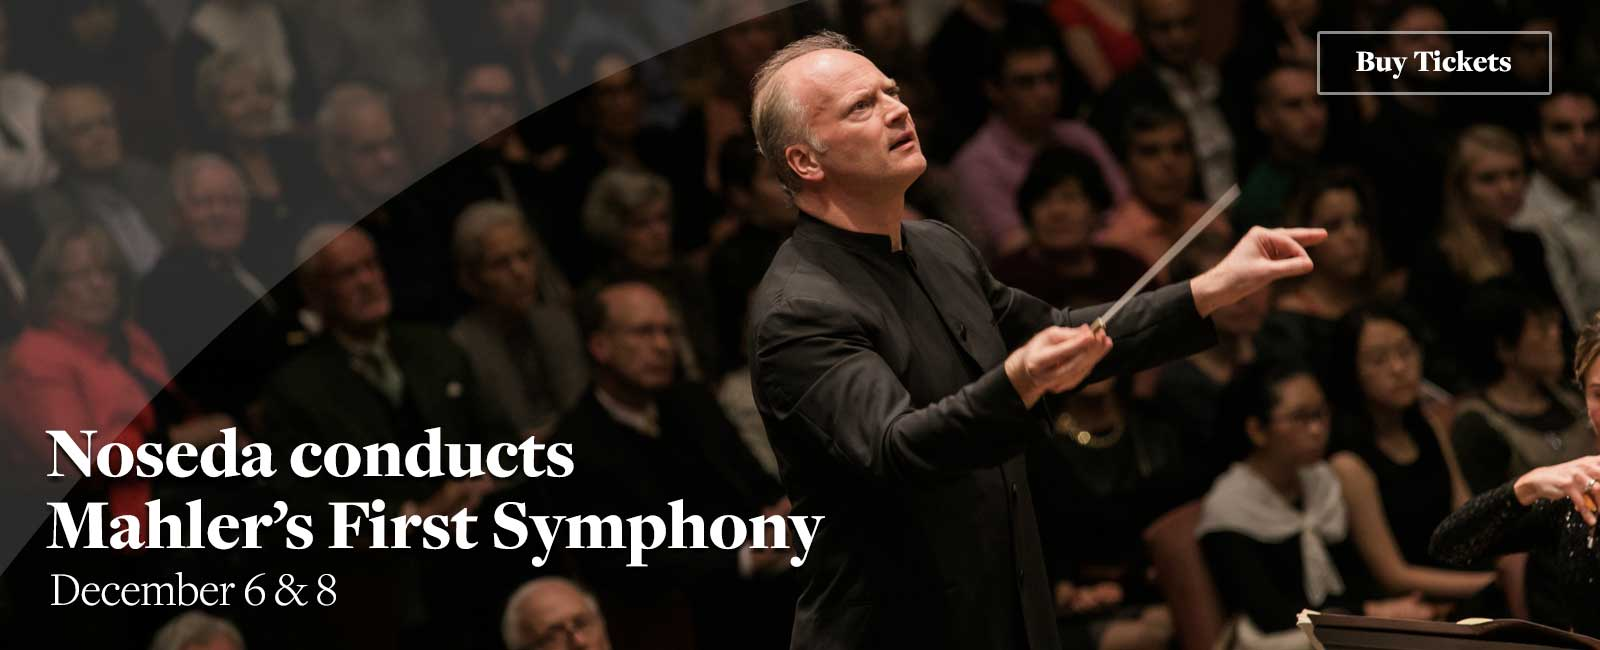 Noseda conducts Mahler's First Symphony